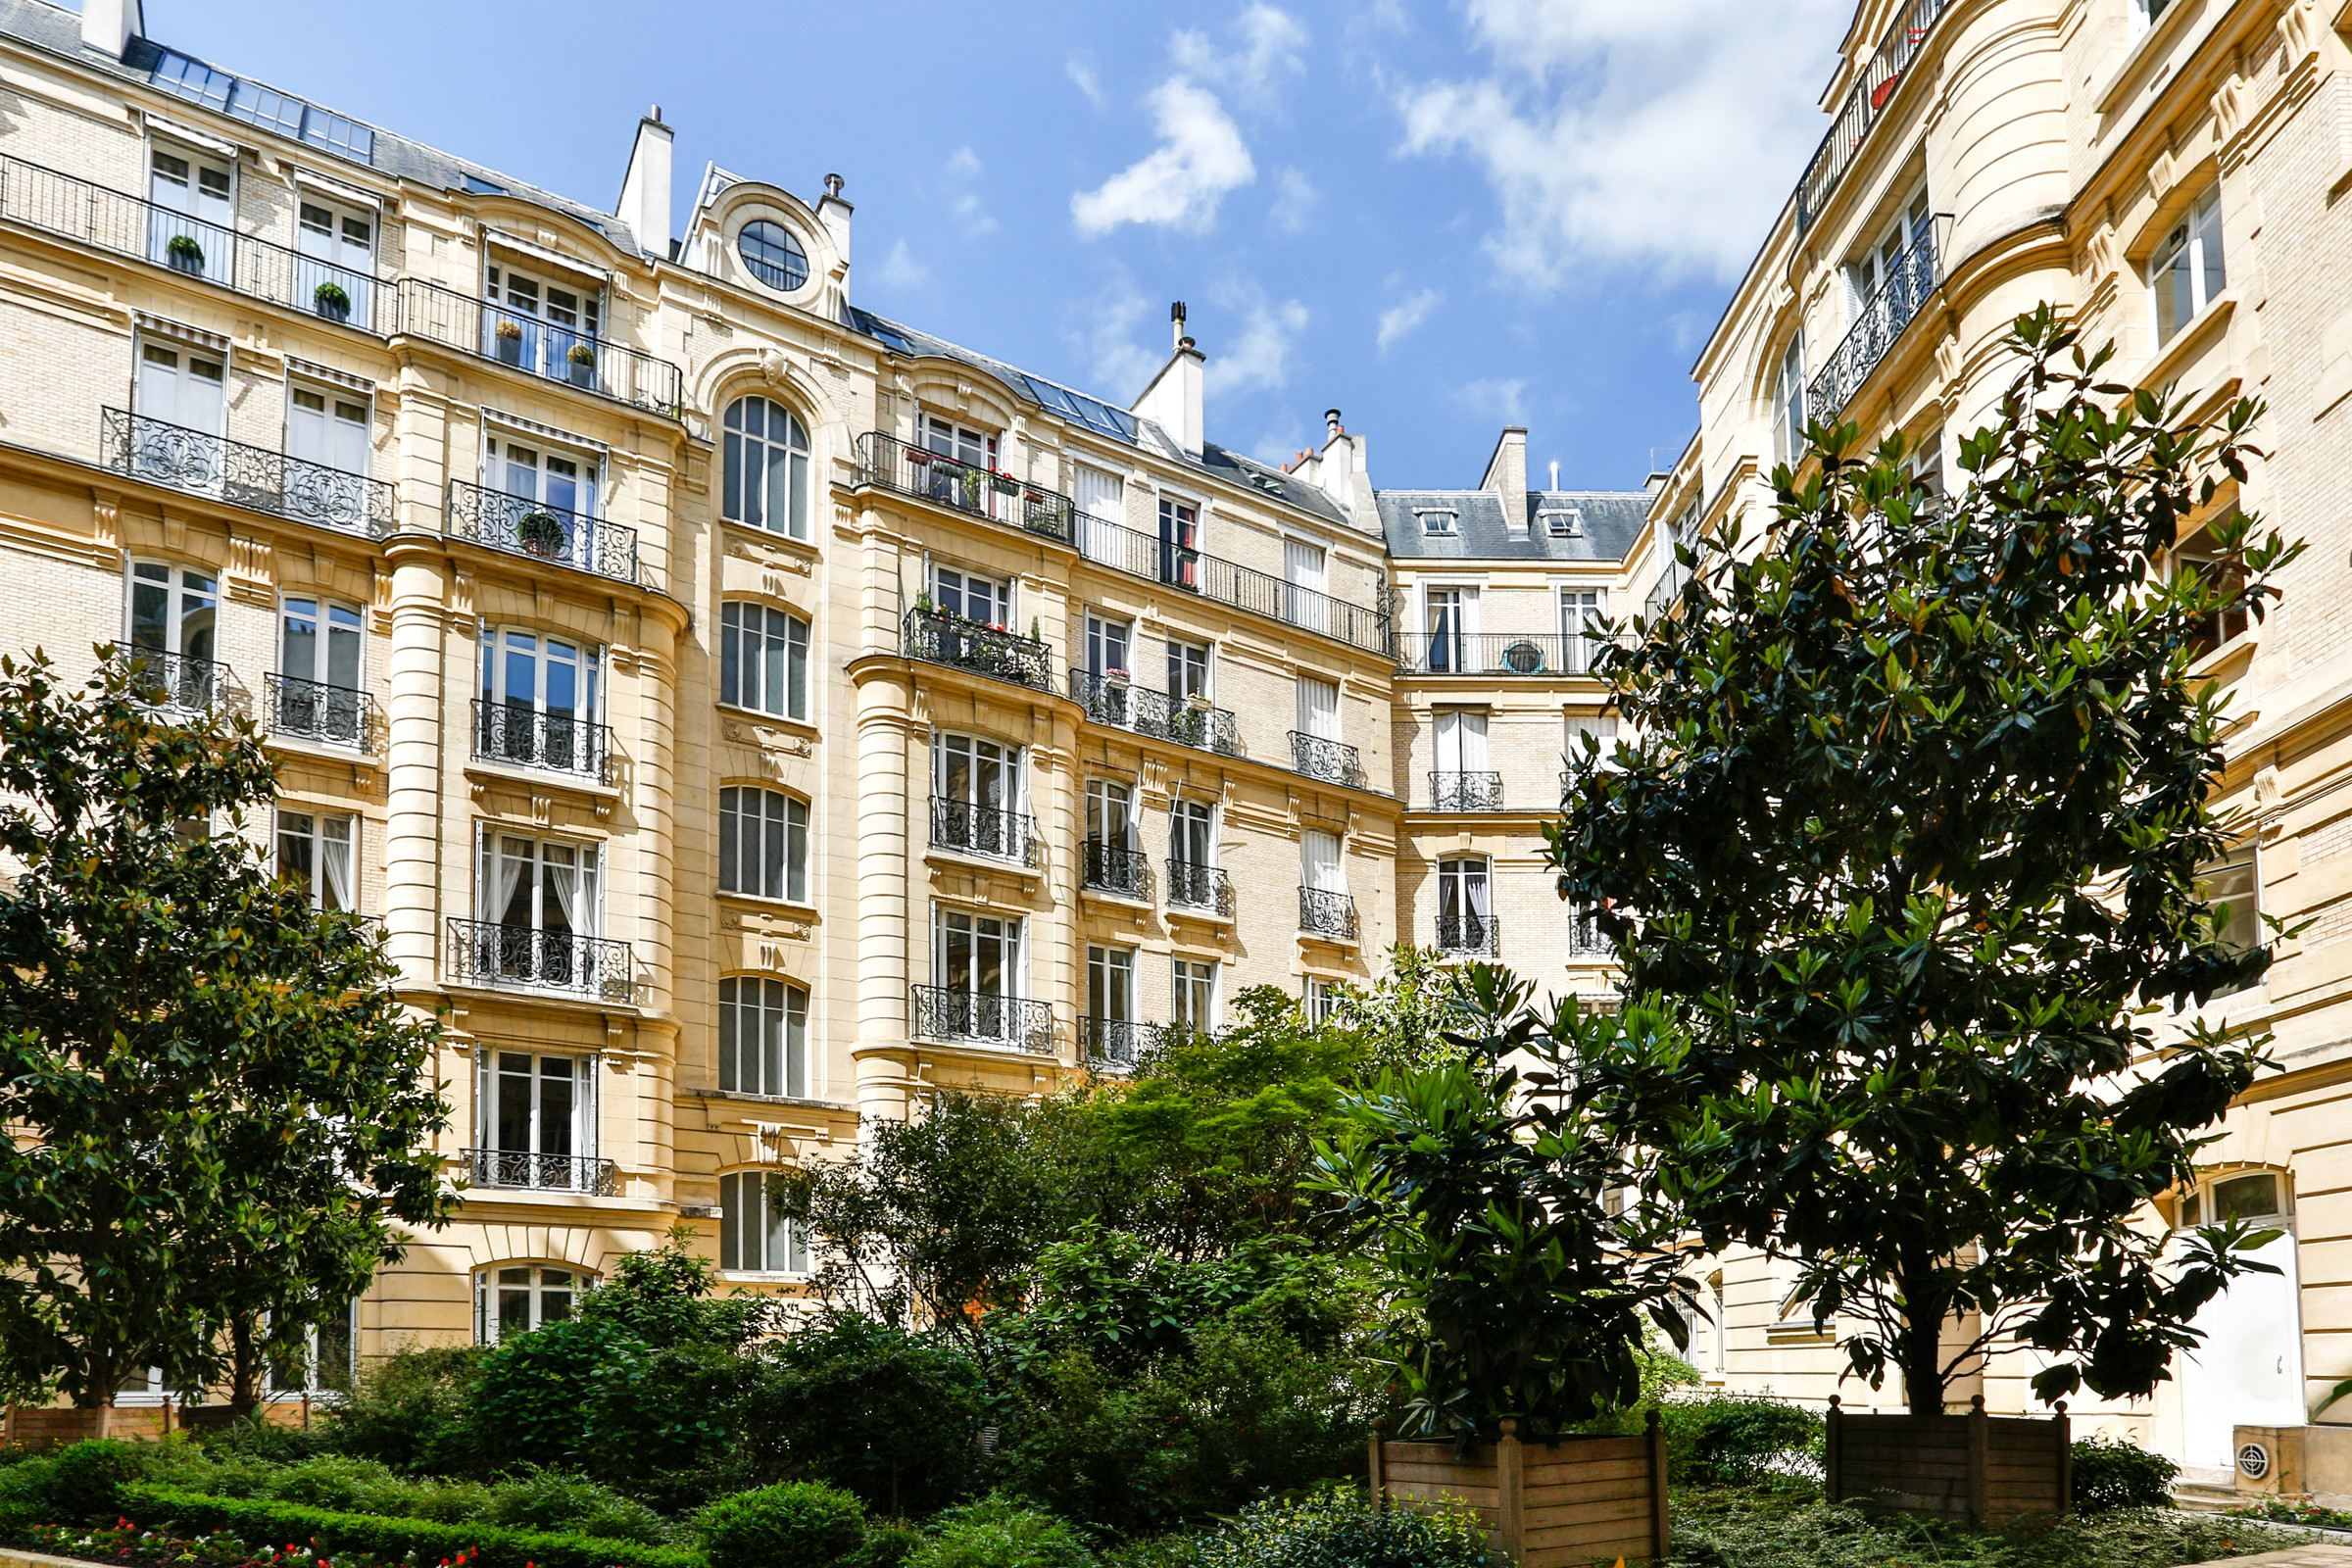 Property For Sale at Paris 16 - Pompe. Apartment of 170 sq.m., sunny, South-West exposure